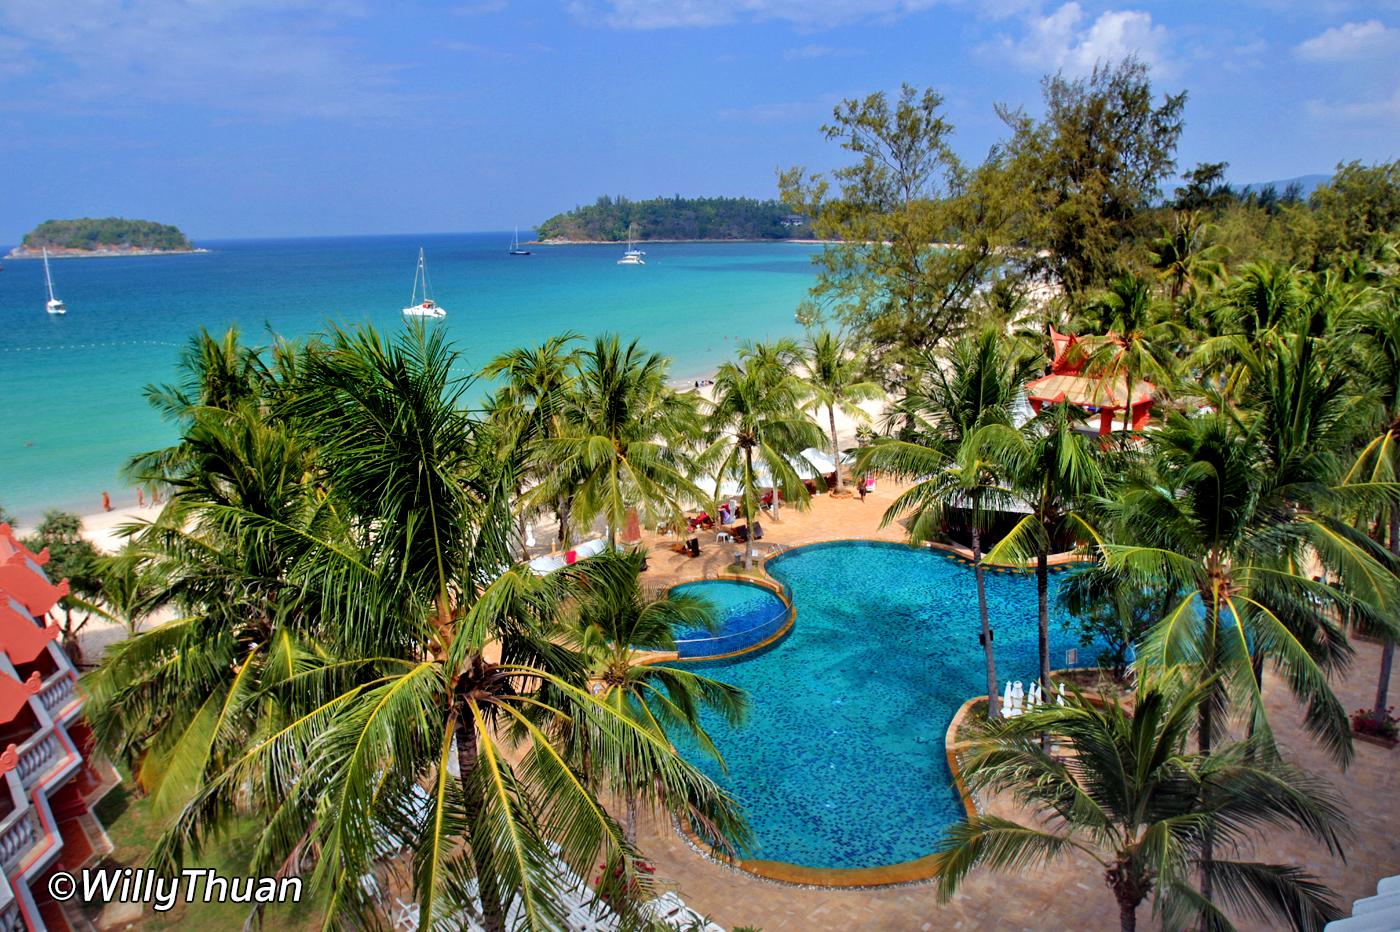 Best Beach Resort In Thailand In December